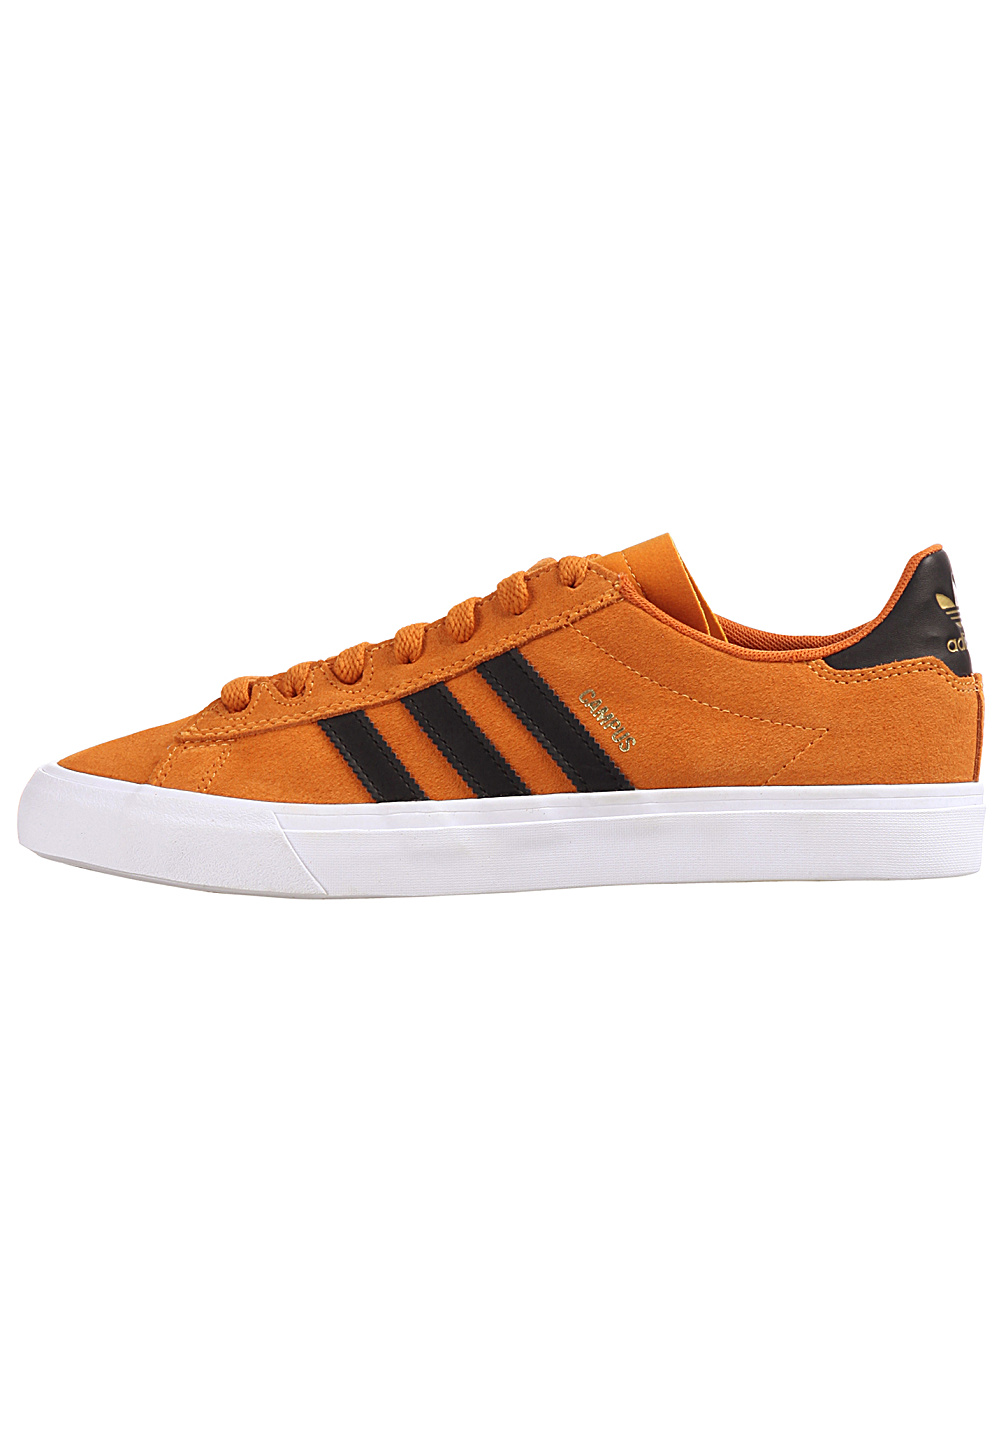 classic shoes the cheapest crazy price Adidas Skateboarding Campus Vulc II - Sneakers for Men - Orange